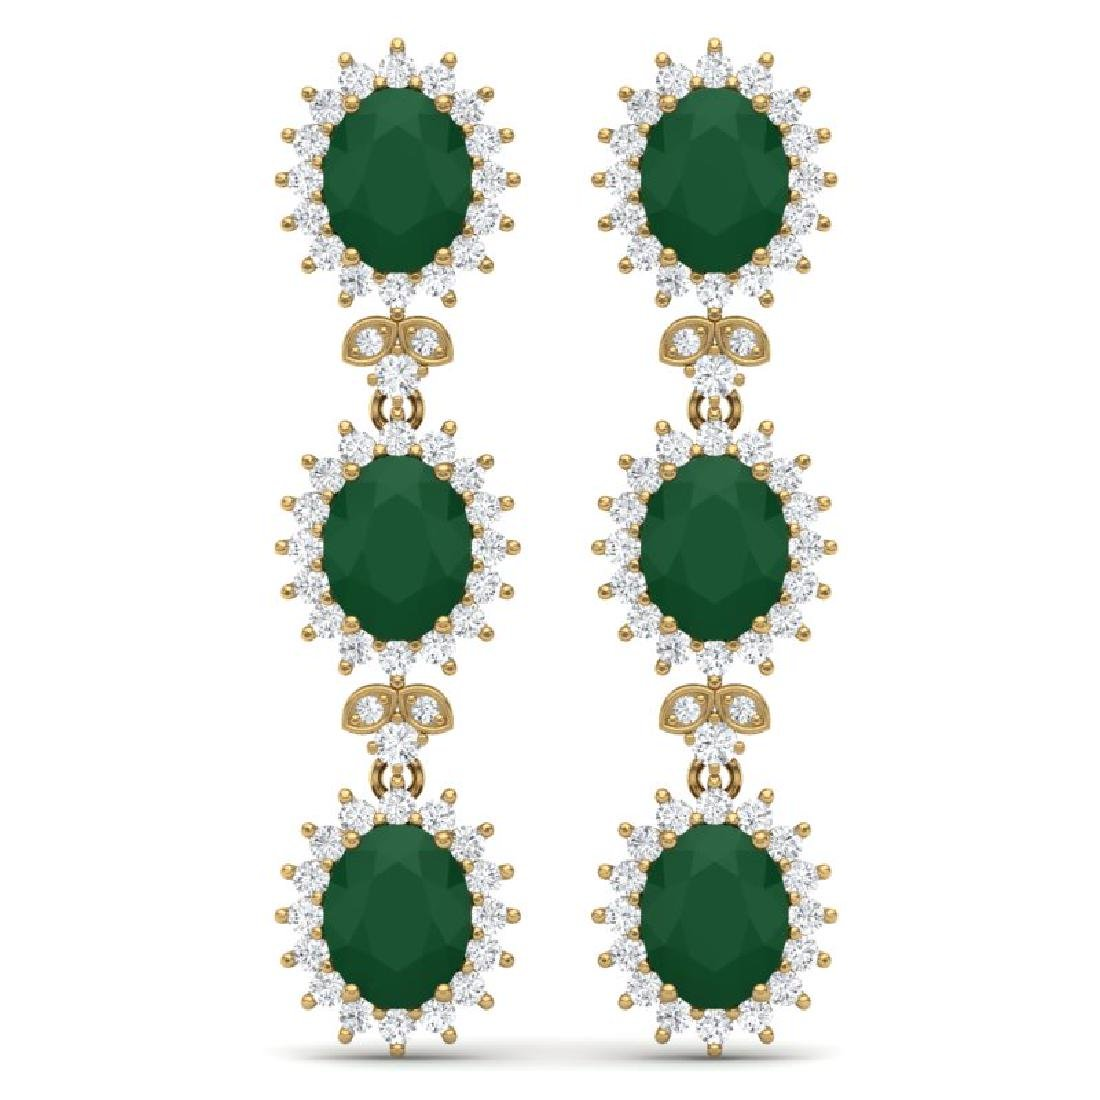 24.52 CTW Royalty Emerald & VS Diamond Earrings 18K